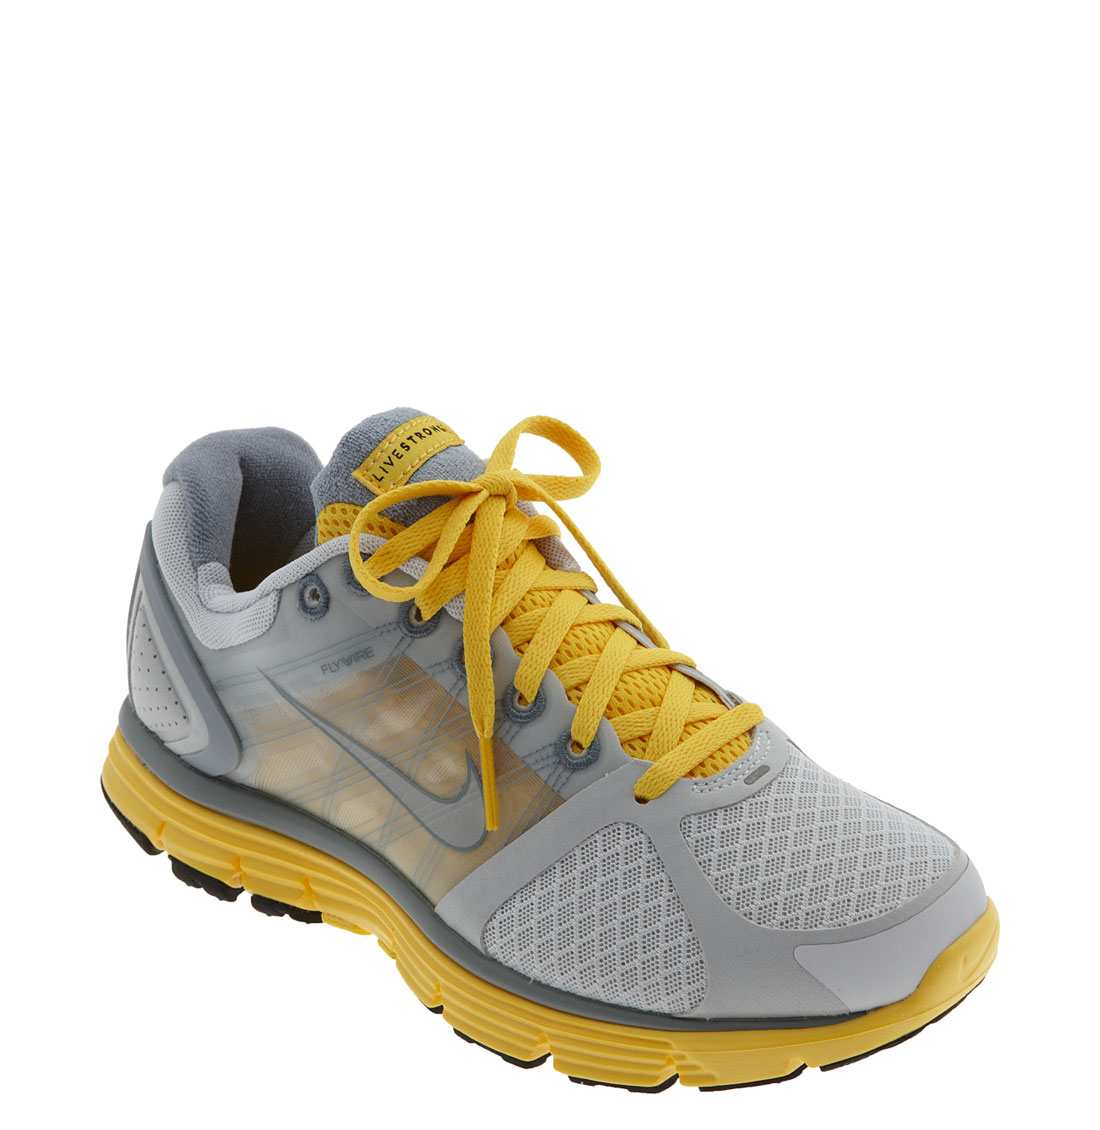 Nike Free Livestrong Shoes